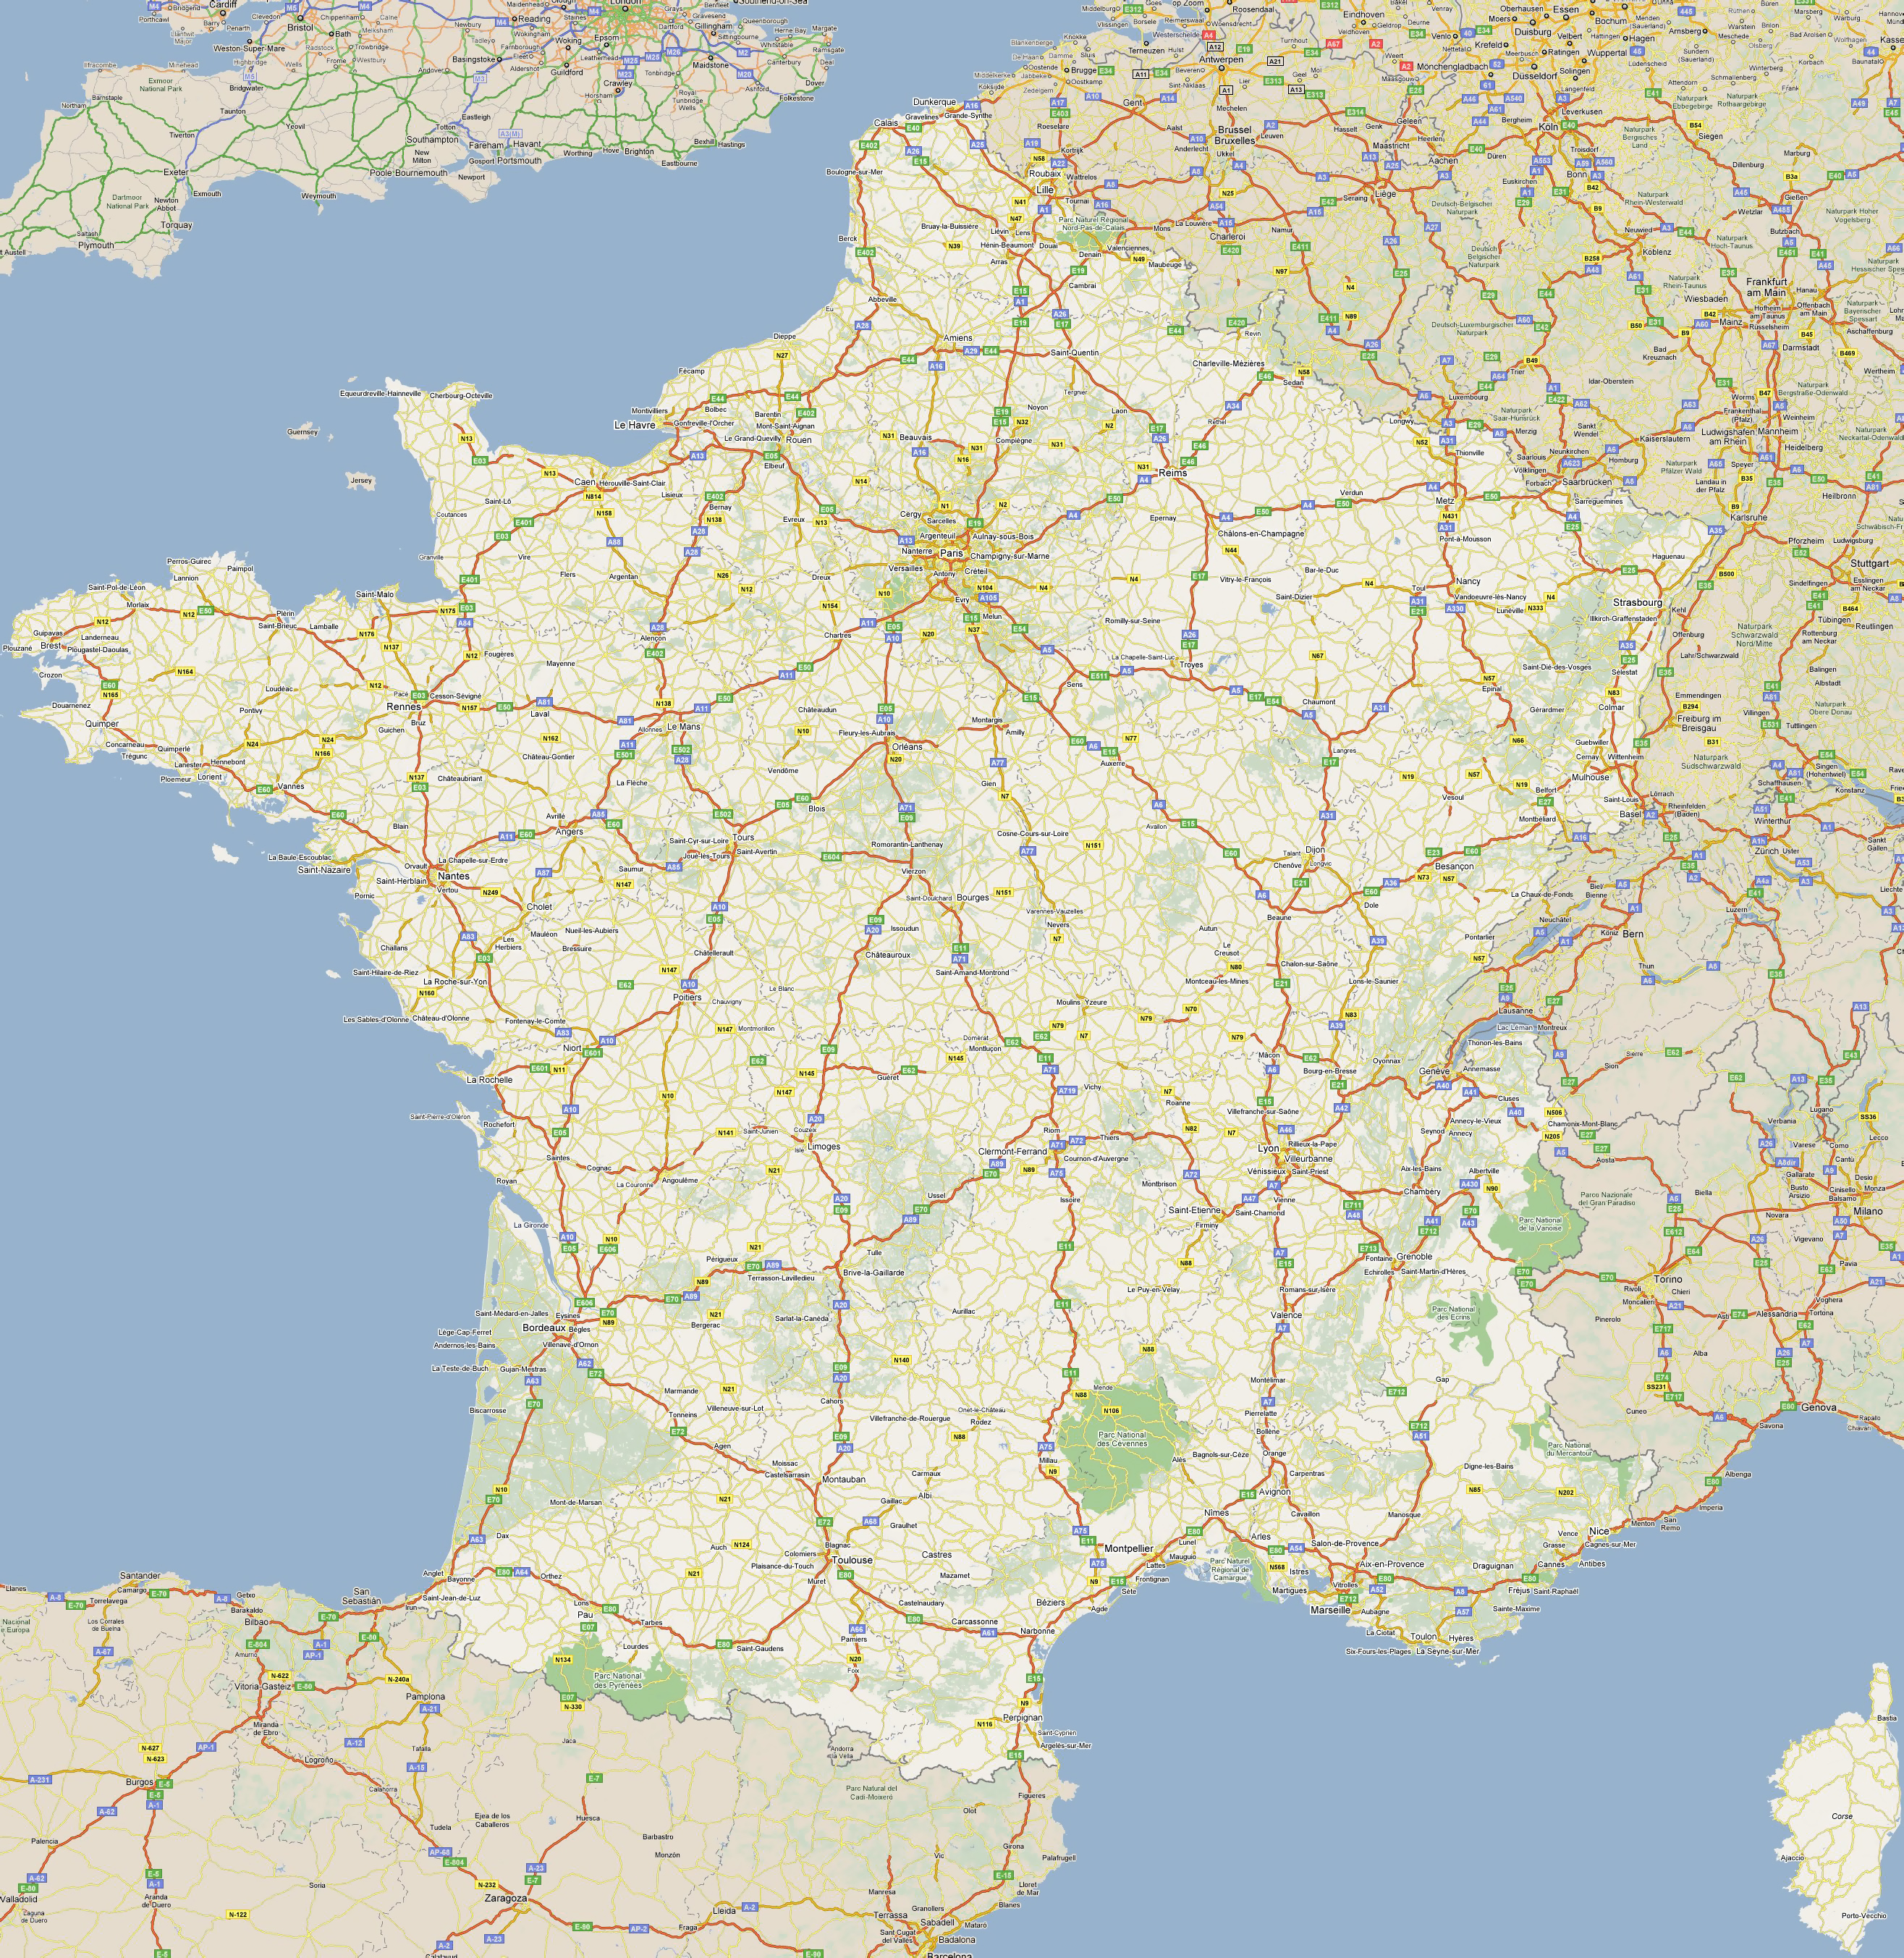 A4 Map Of France.Large Road Map Of France With All Cities Vidiani Com Maps Of All